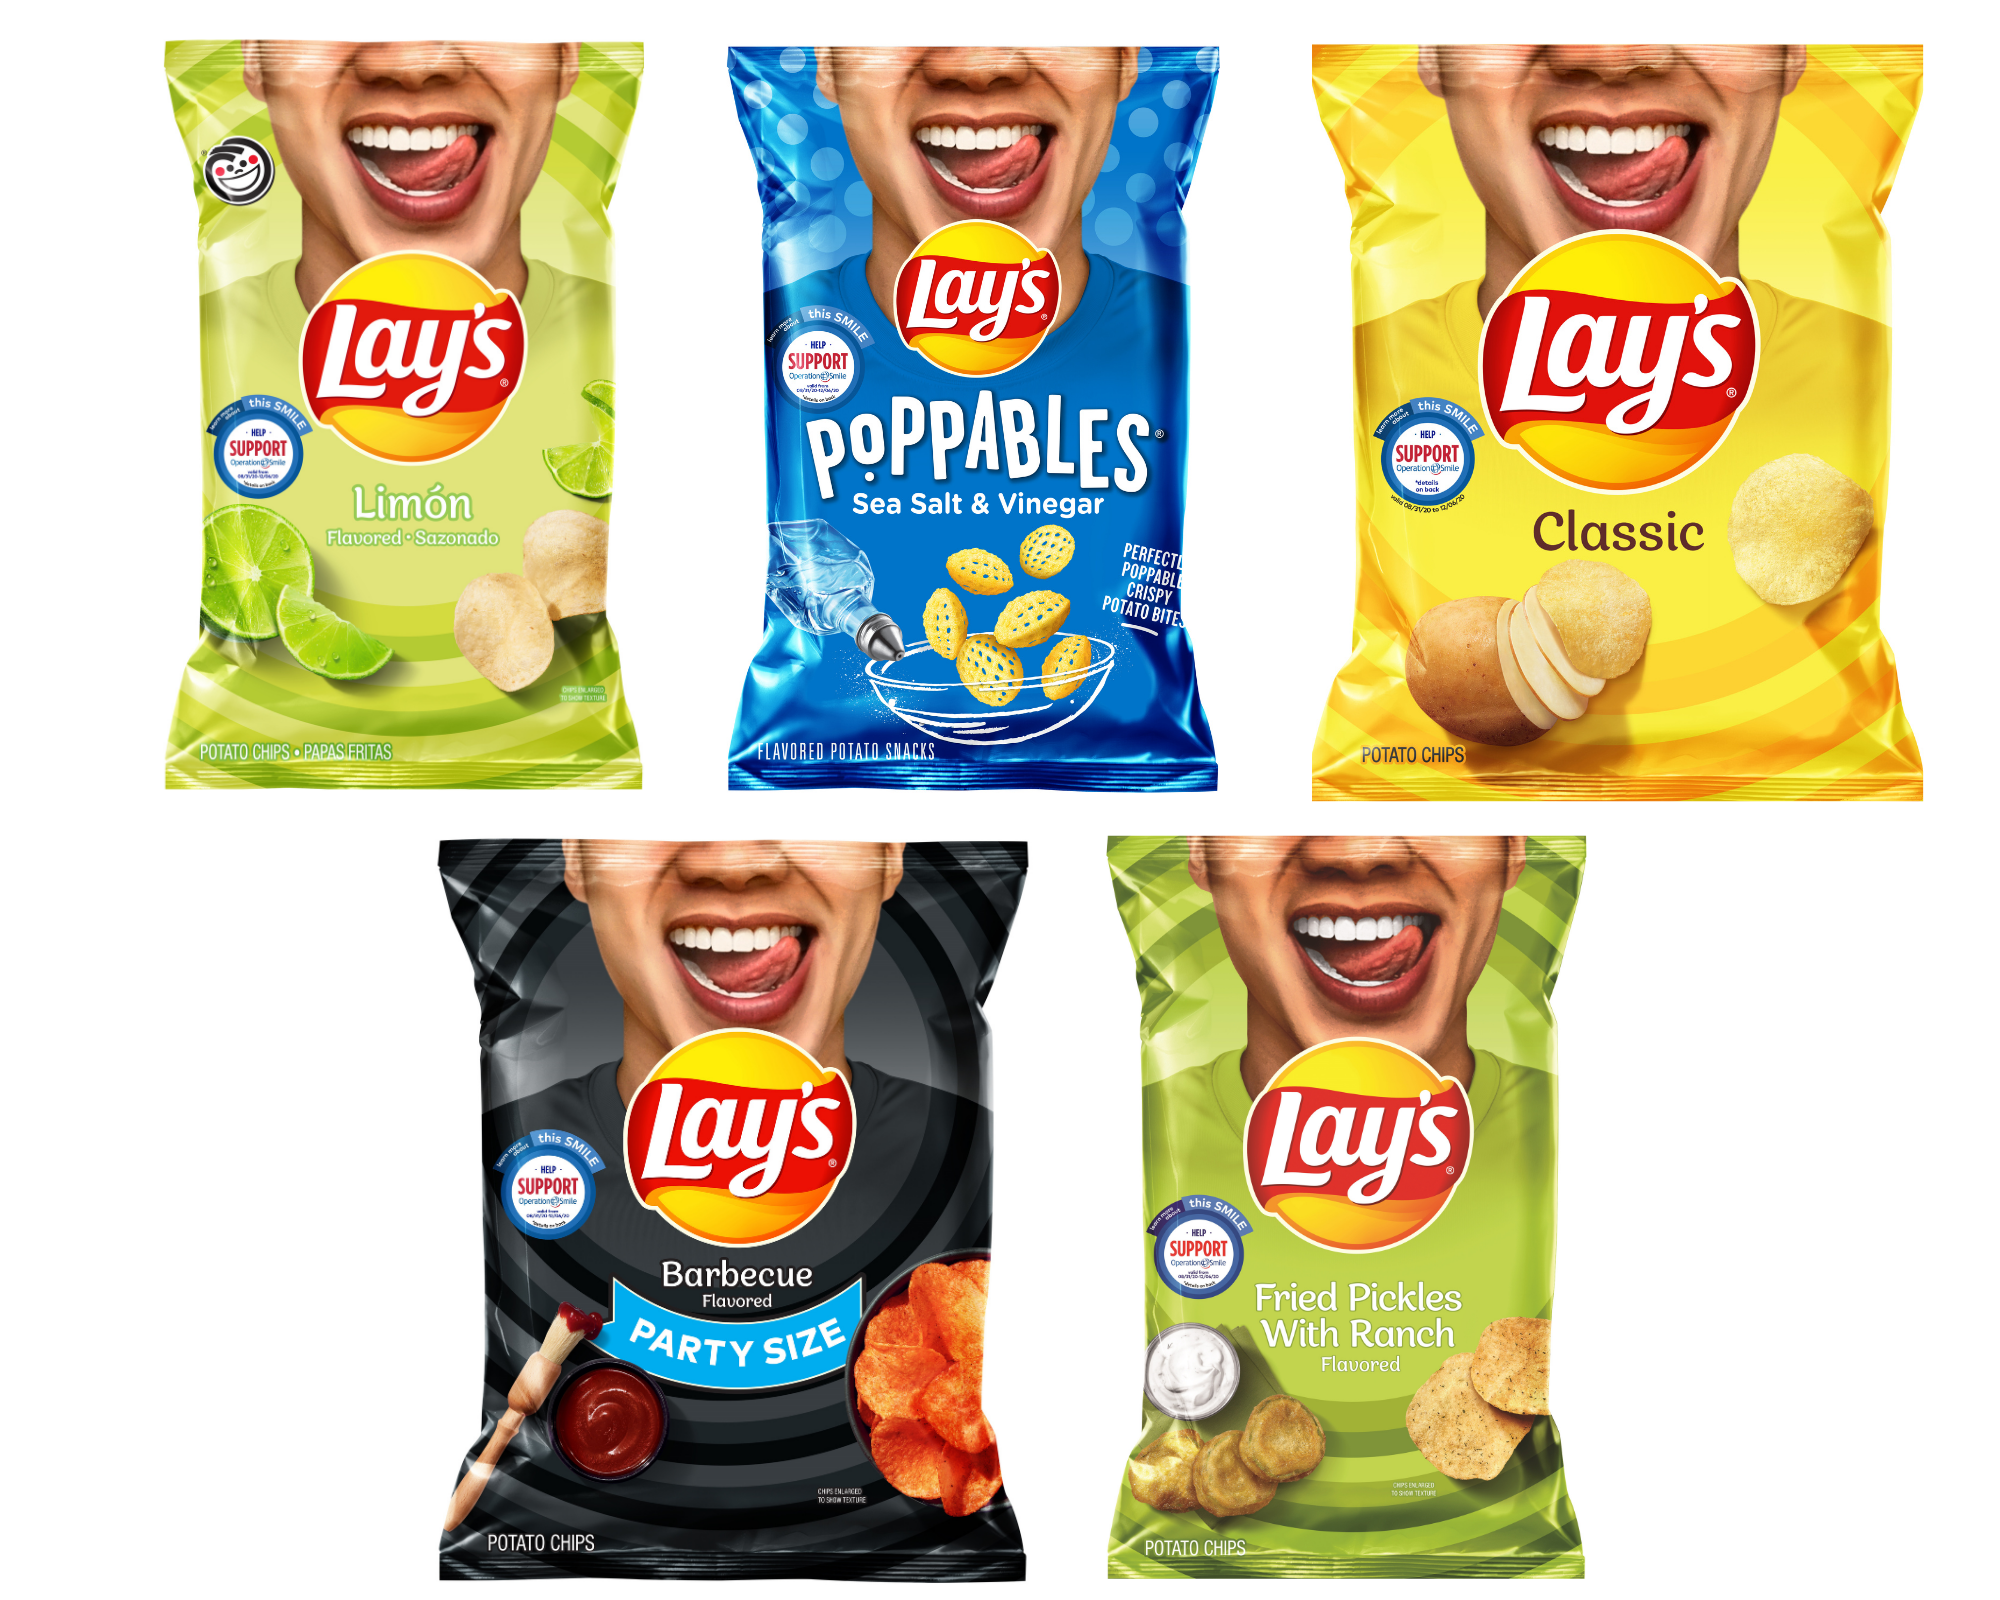 Lays Bags Final